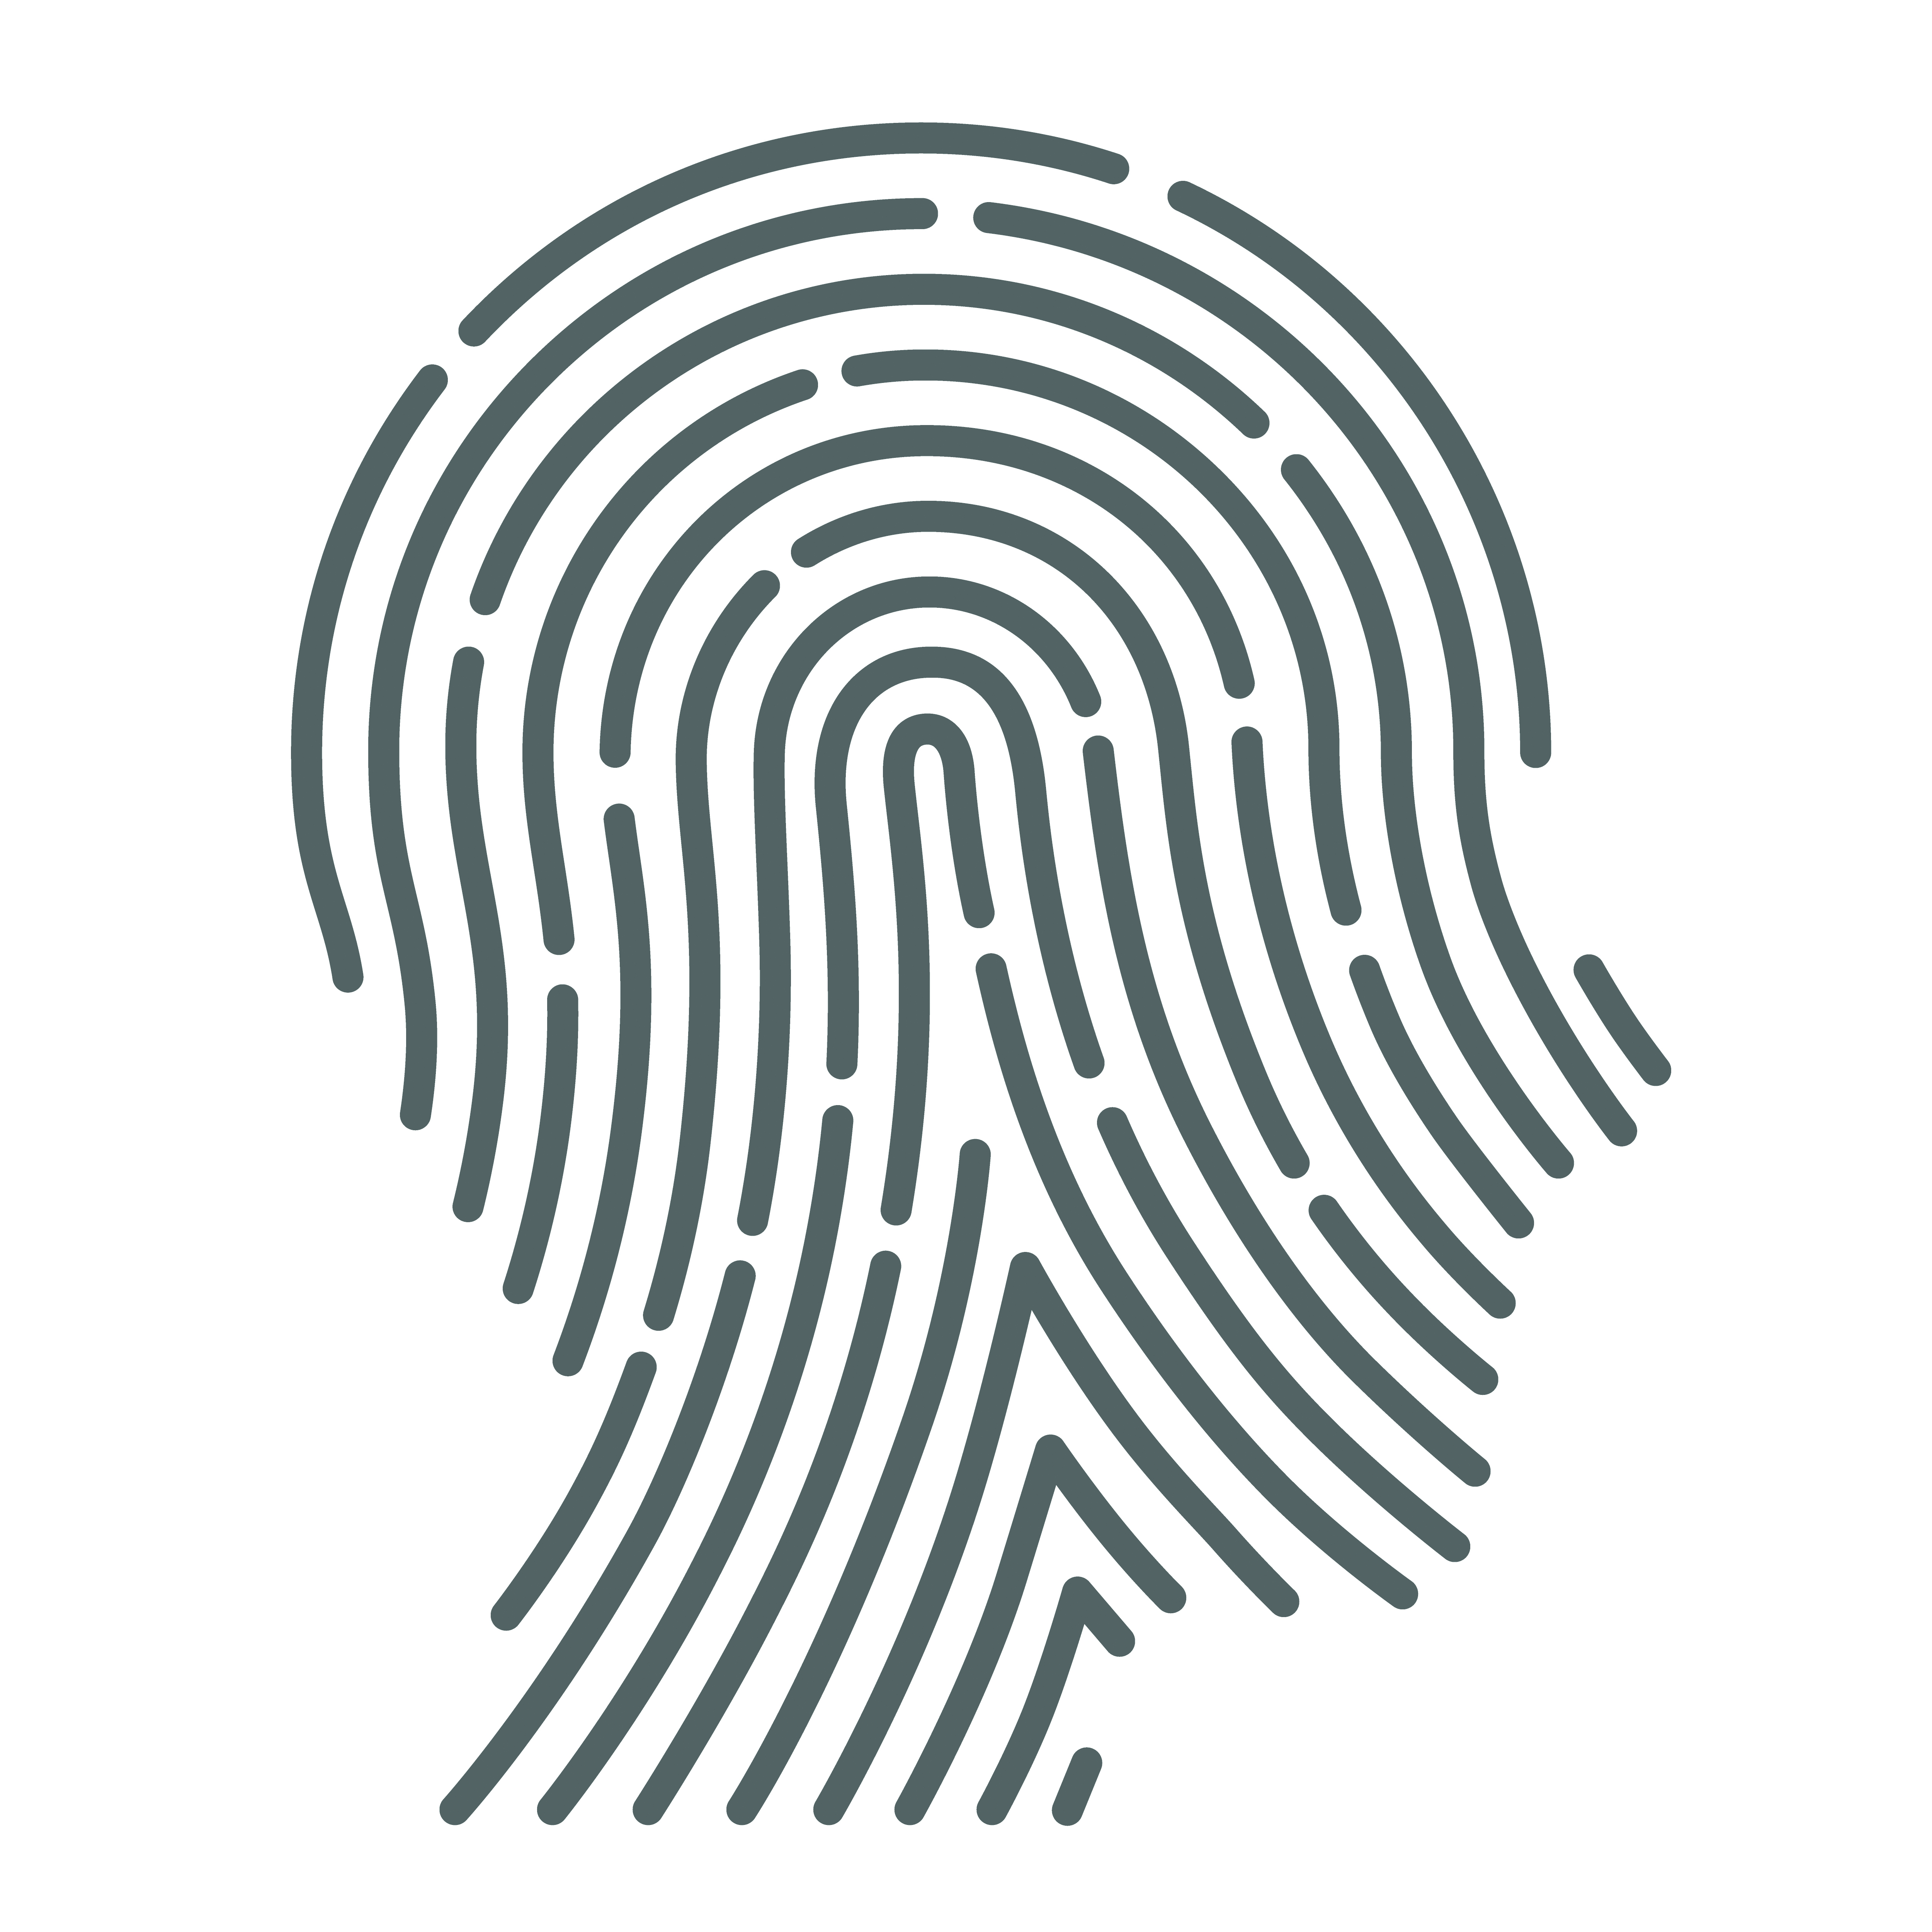 Thumb print recognition